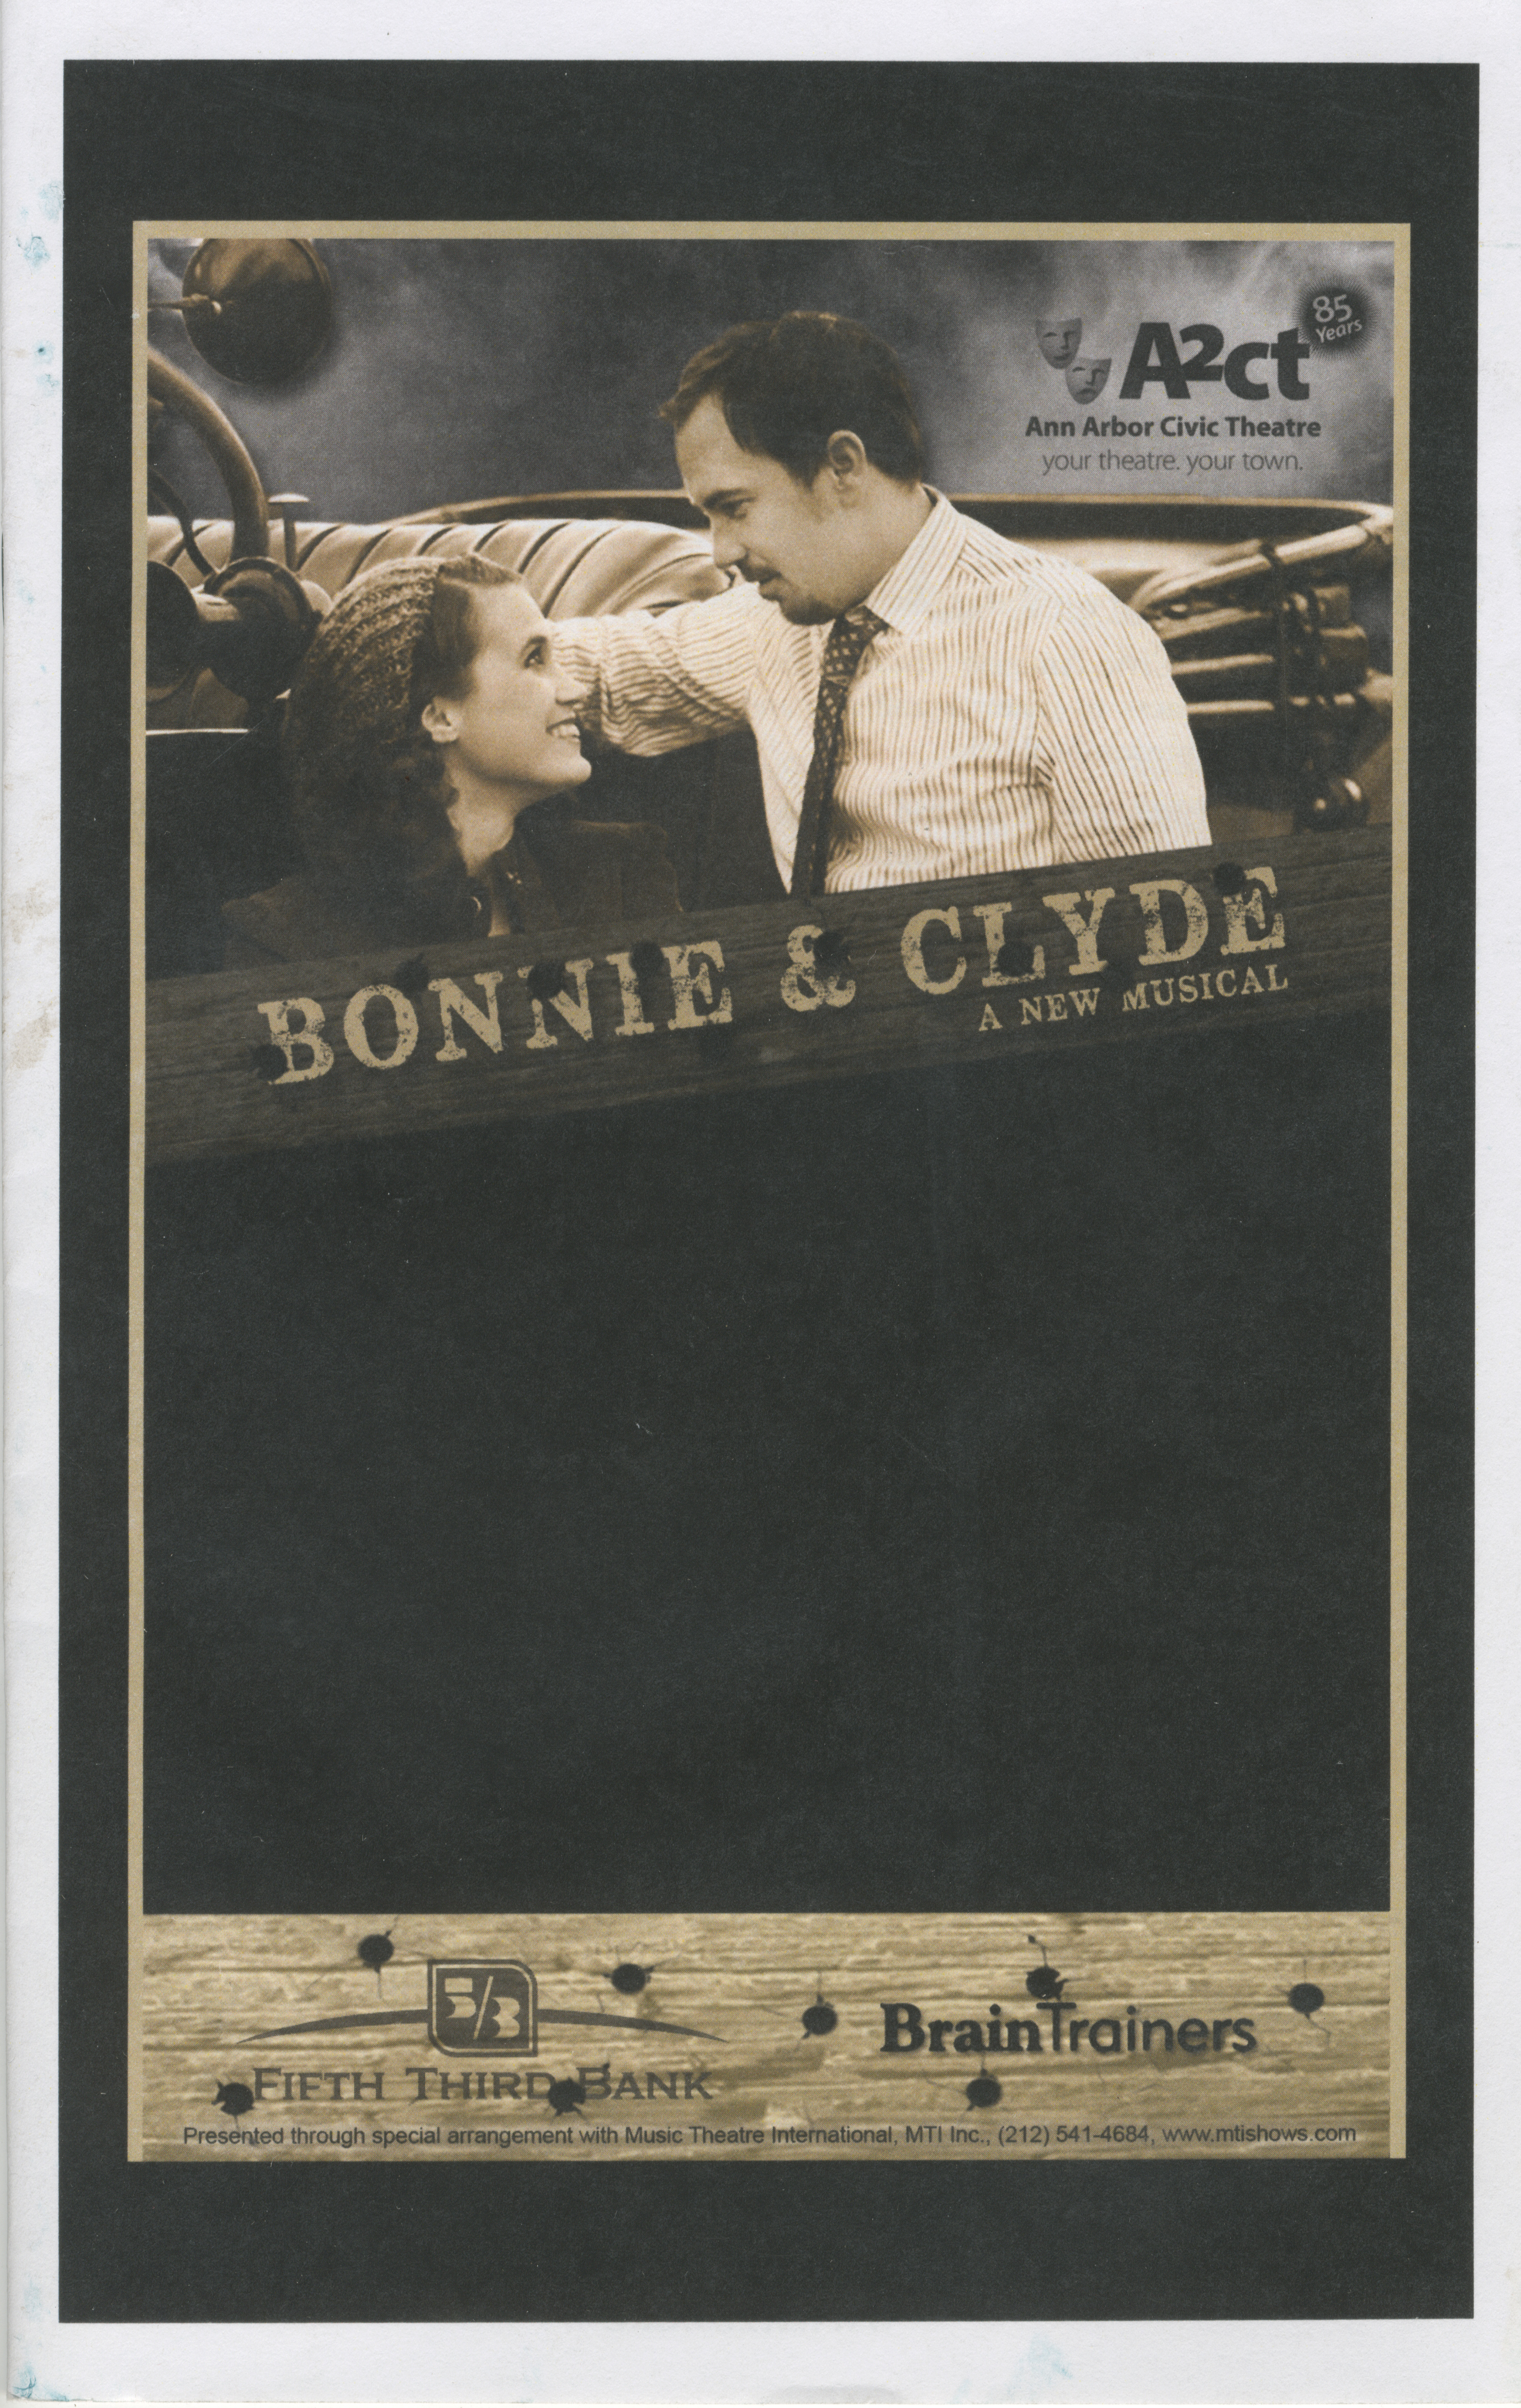 Ann Arbor Civic Theatre Program: Bonnie & Clyde, January 15, 2015 image